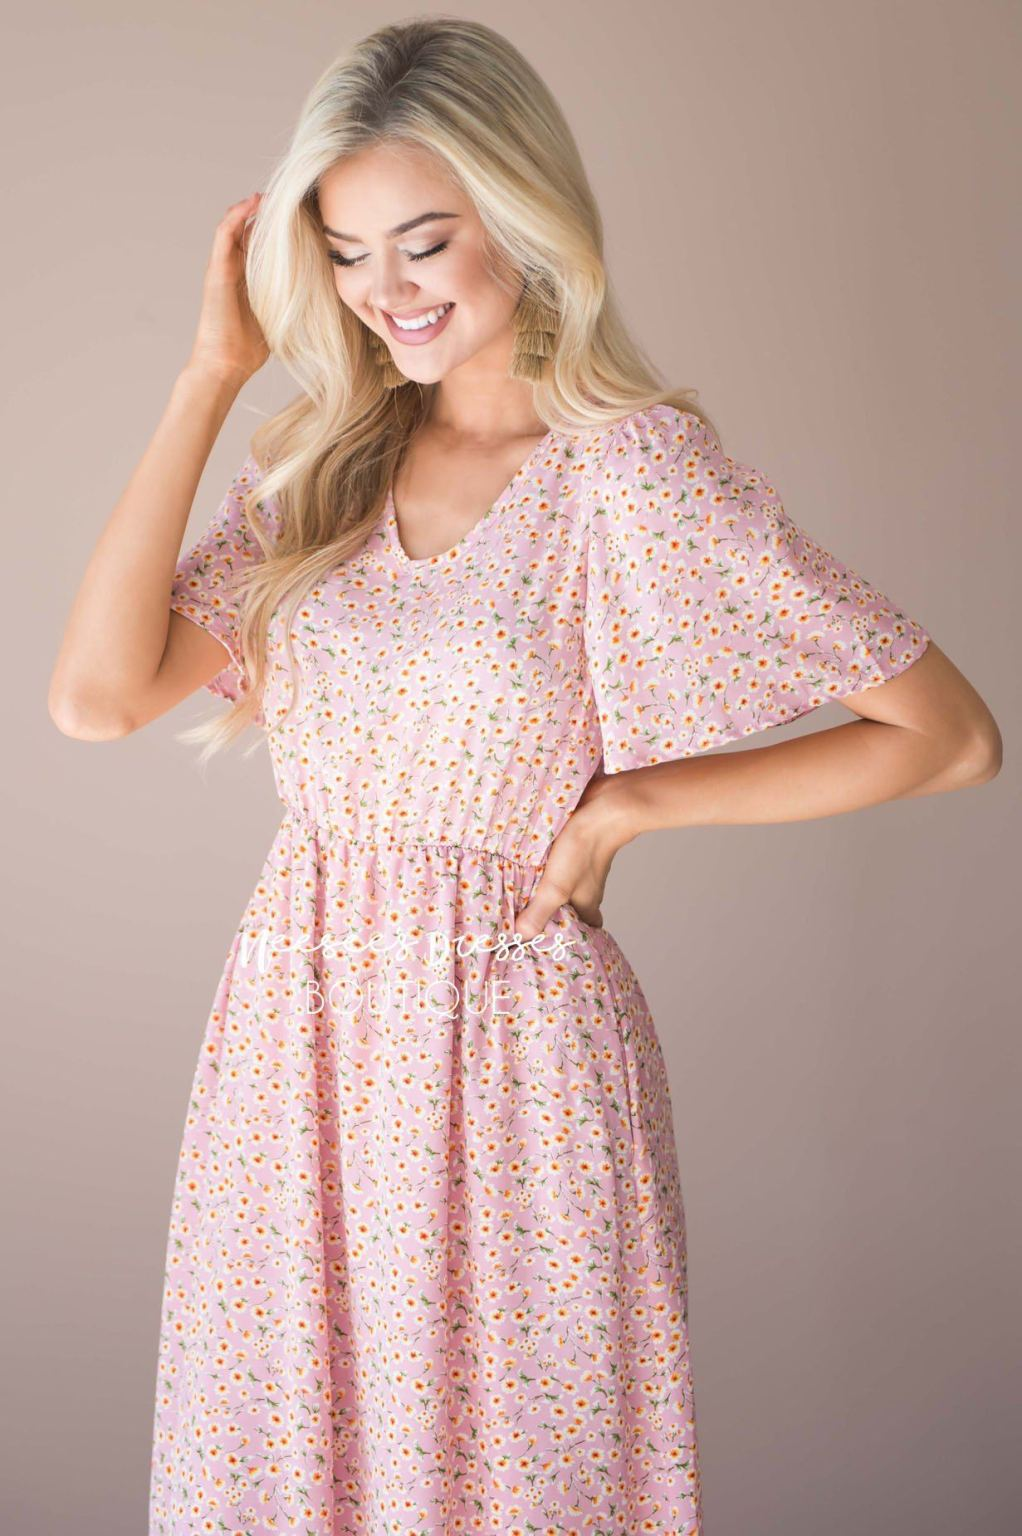 Neesees Dresses Pink Floral Modest Dress with Sleeves